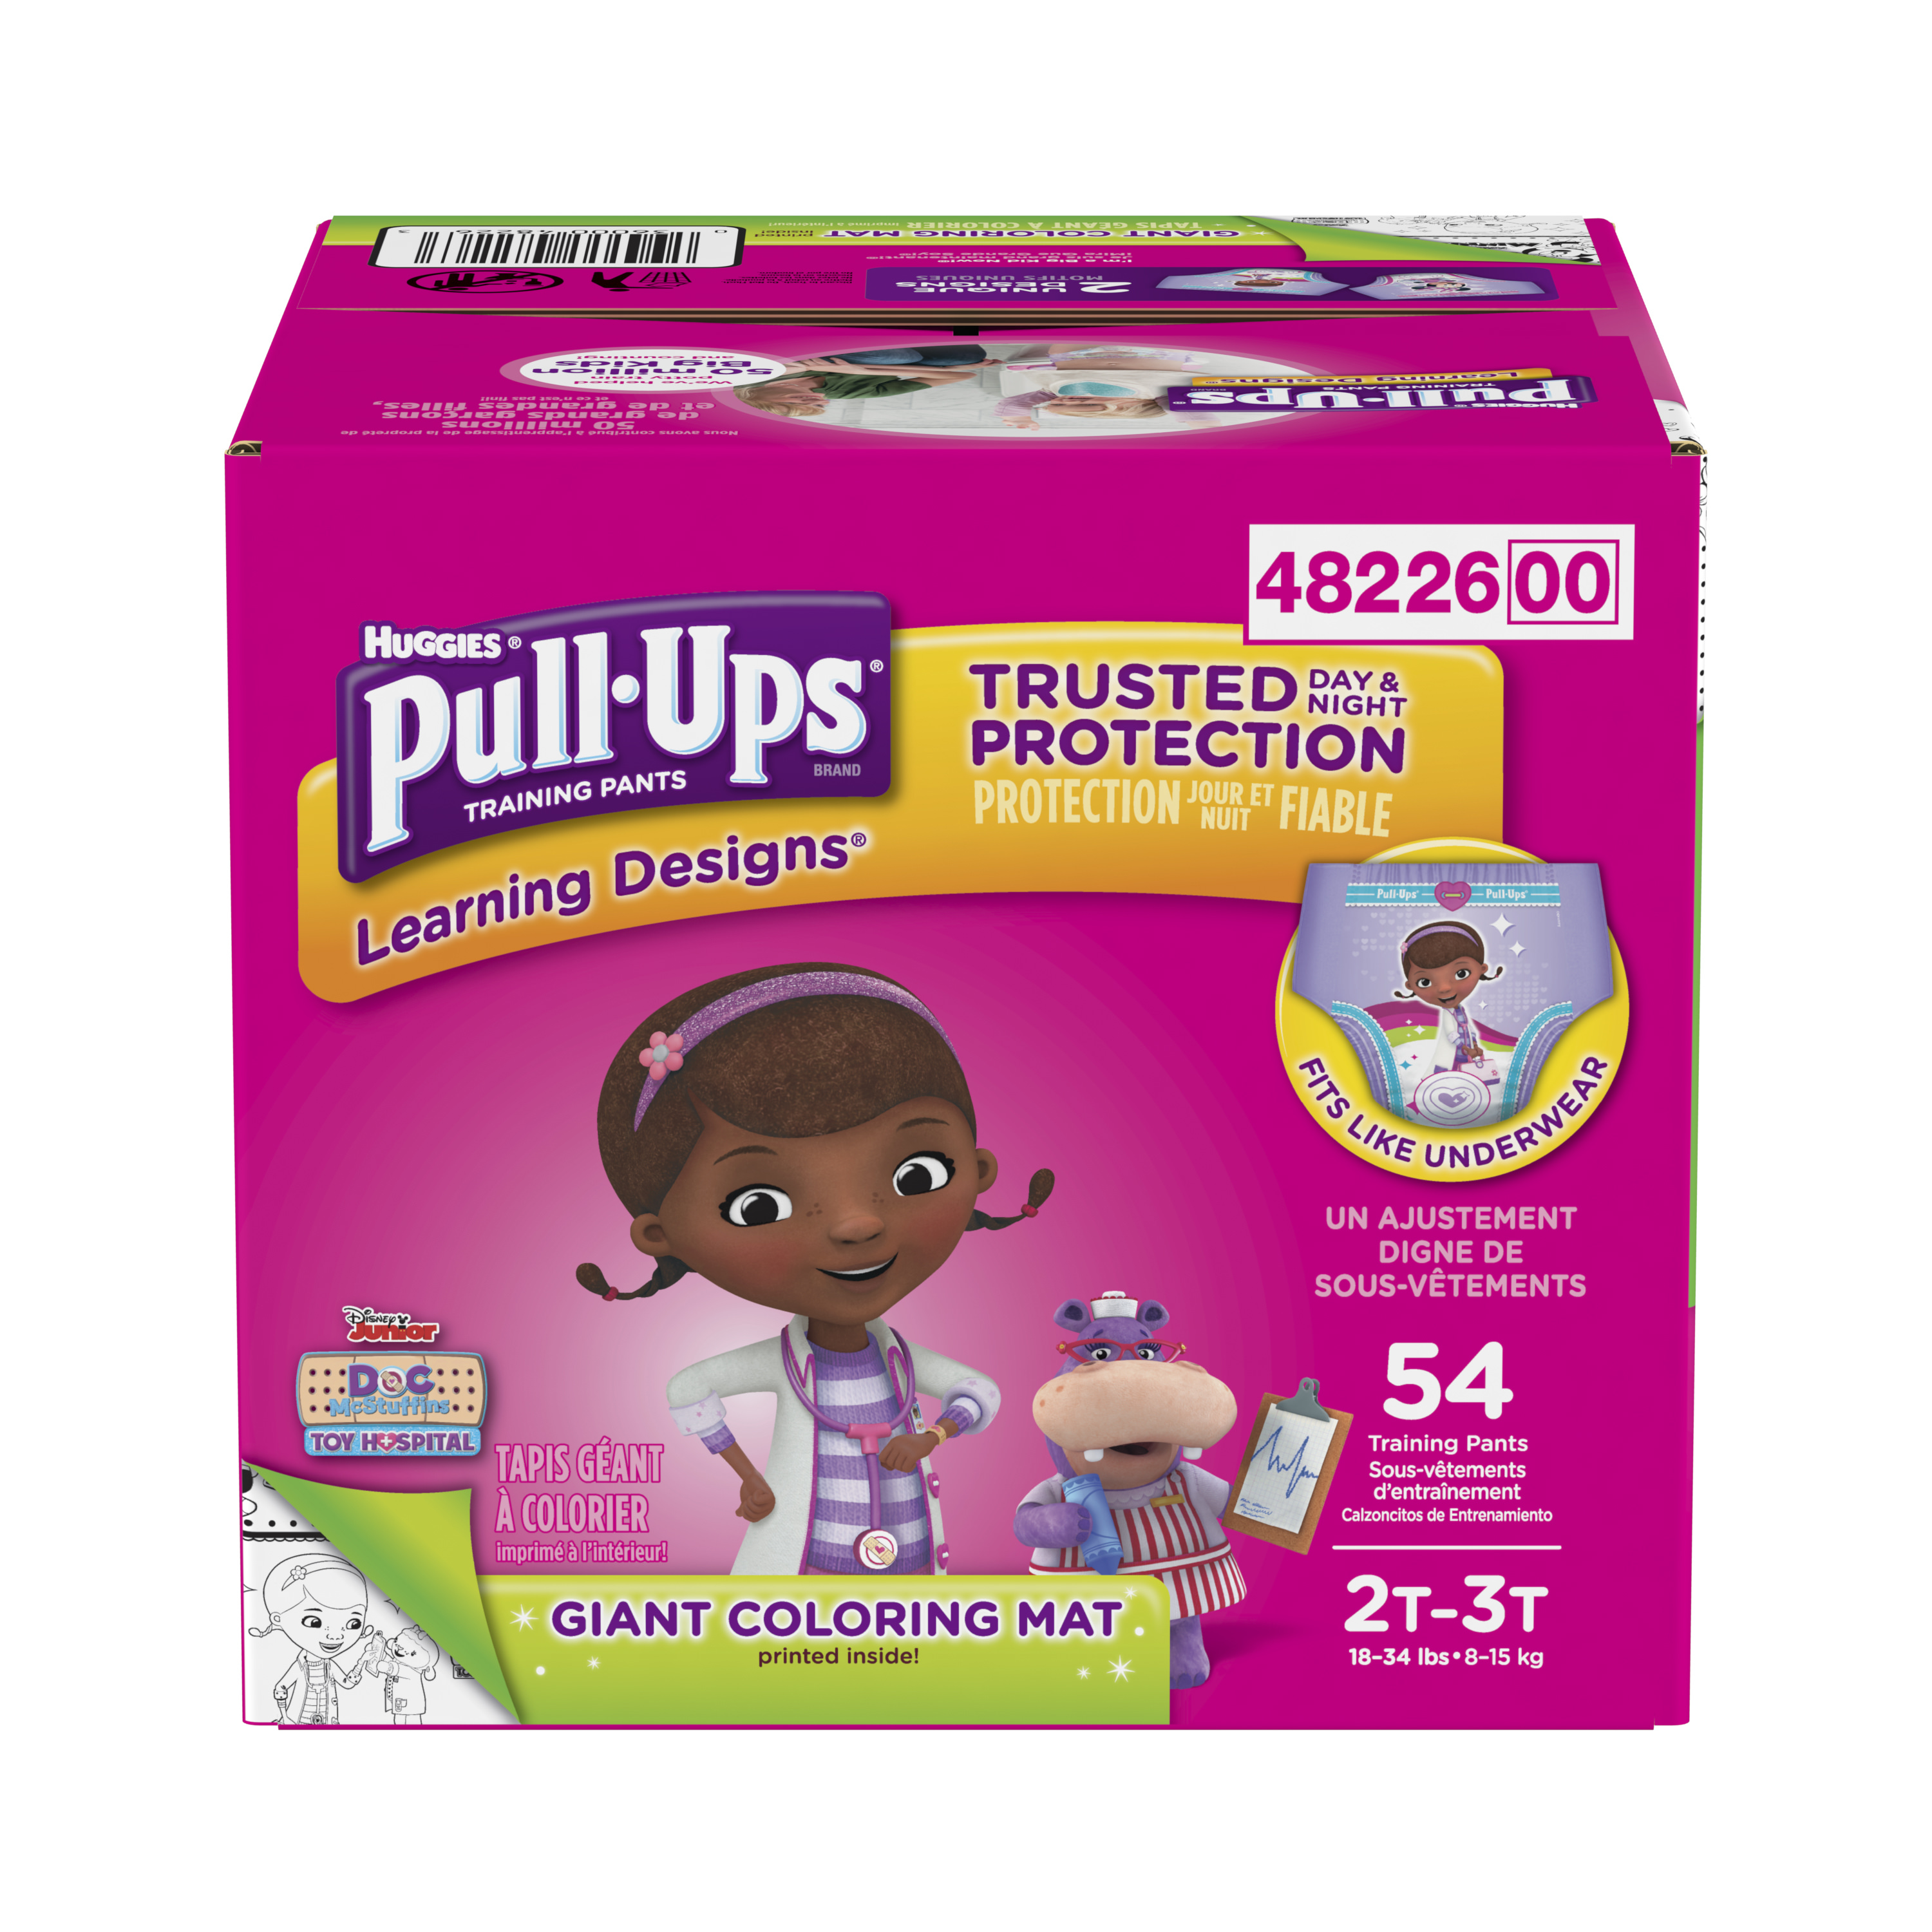 Pull-Ups Learning Designs Potty Training Pants for Girls, 2T-3T (18-34 lb.), 54 Ct. (Packaging May Vary)